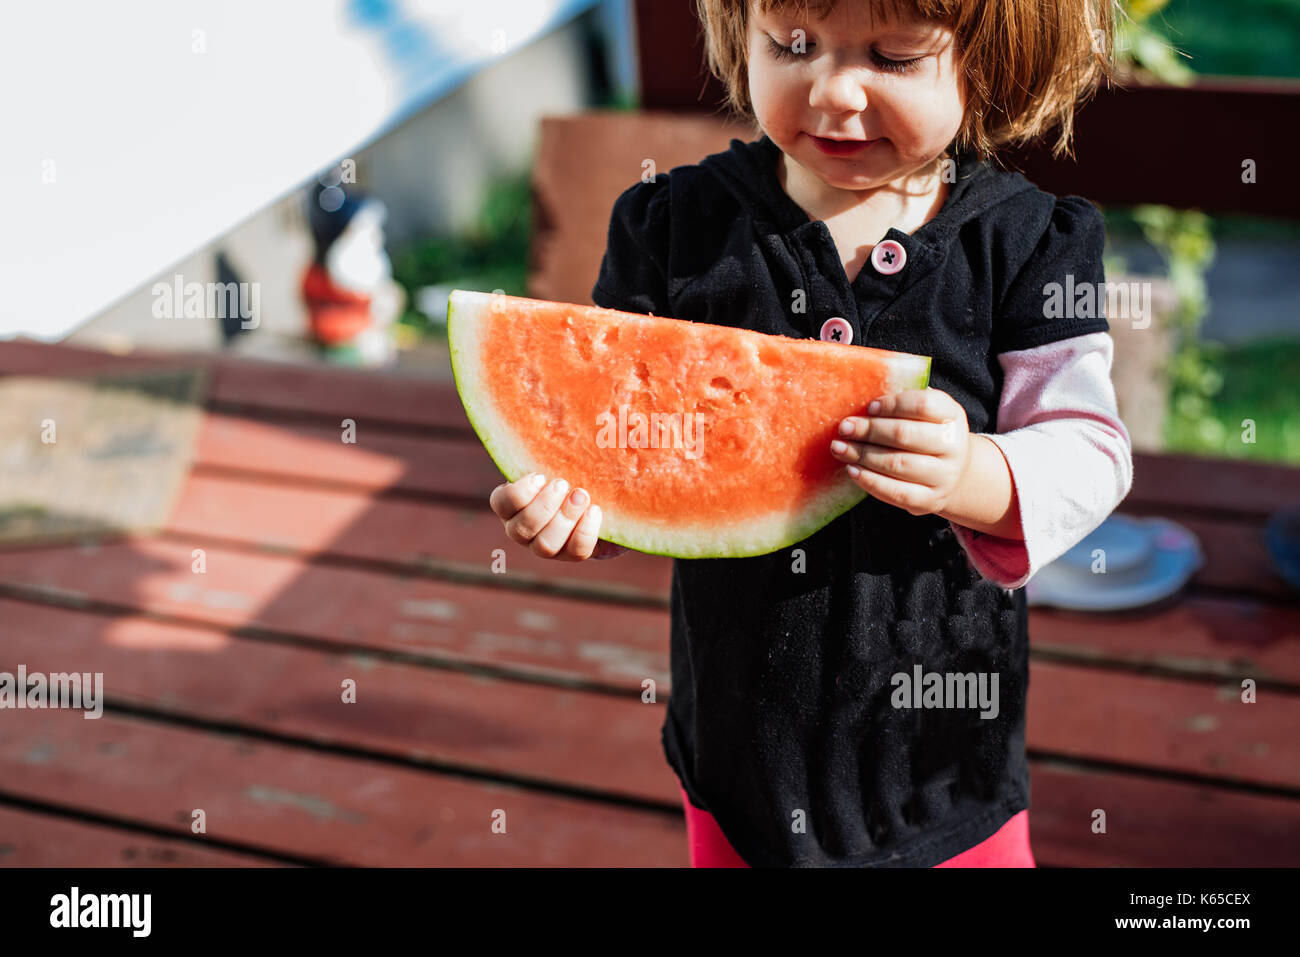 A young girl holds a slice of watermelon on a warm summer day. - Stock Image